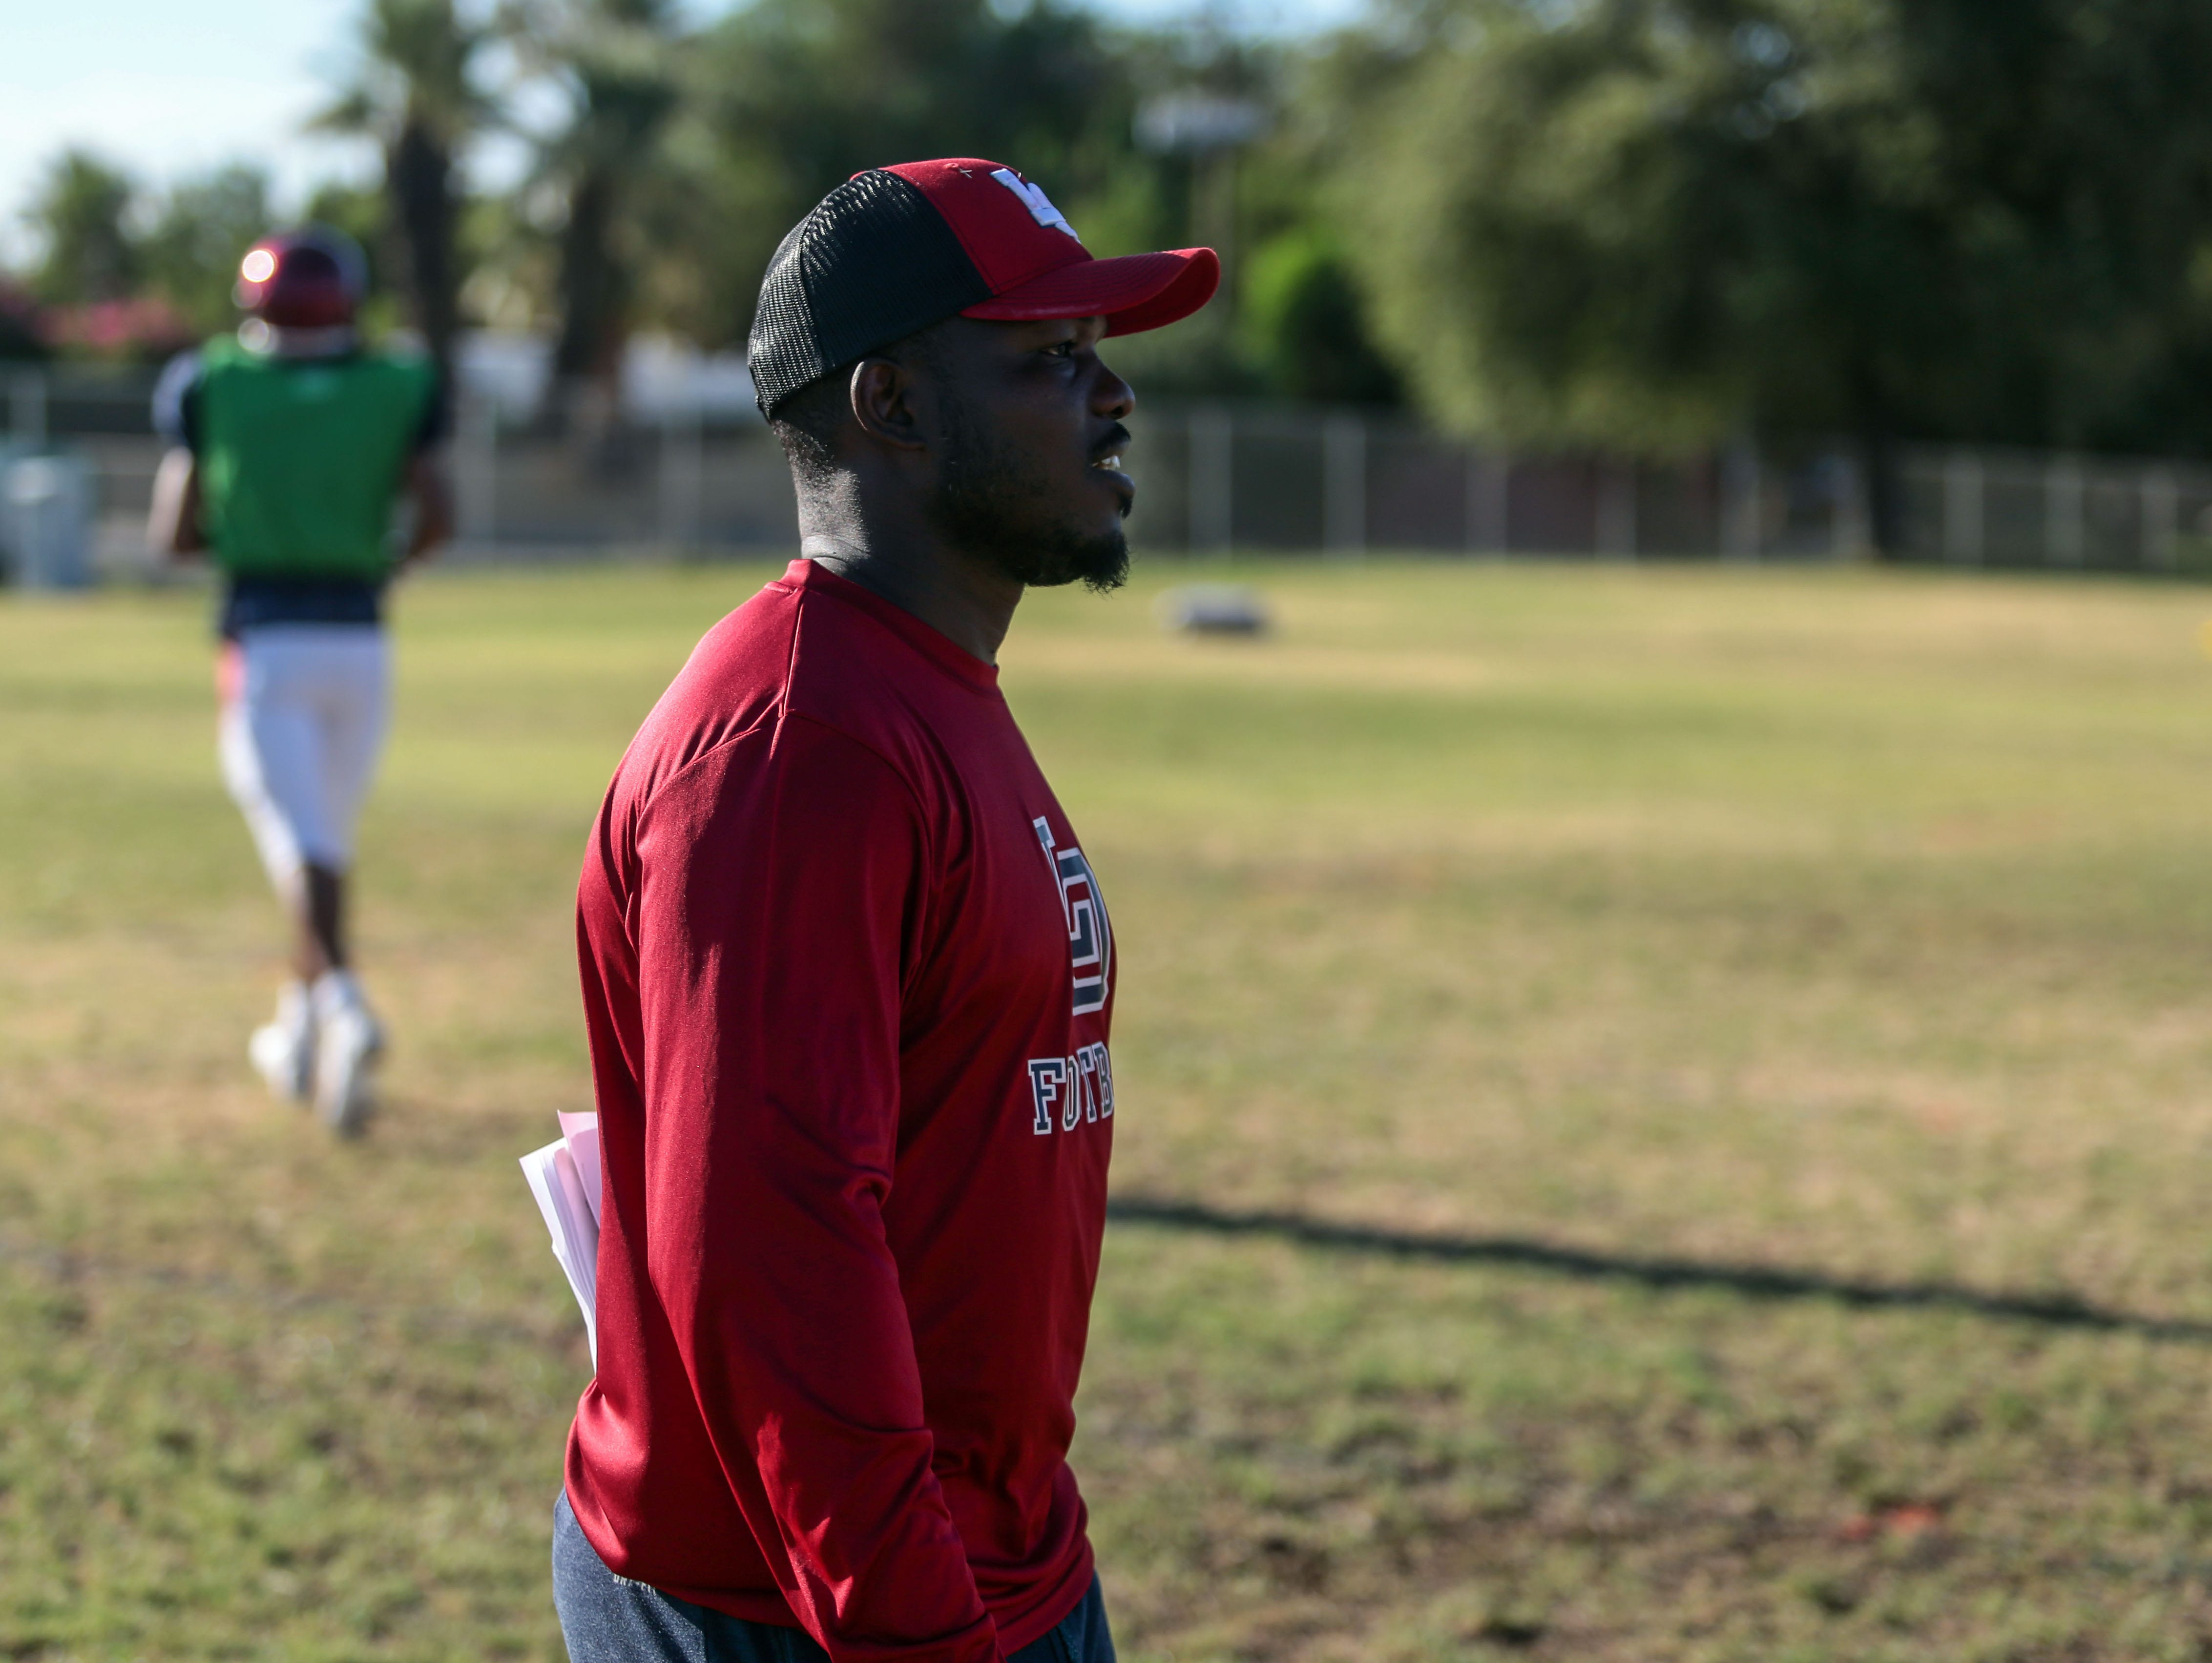 Champion boxer Timothy Bradley assist in the defensive coaching during La Quinta football team practice on Tuesday, August 16, 2016 in La Quinta.